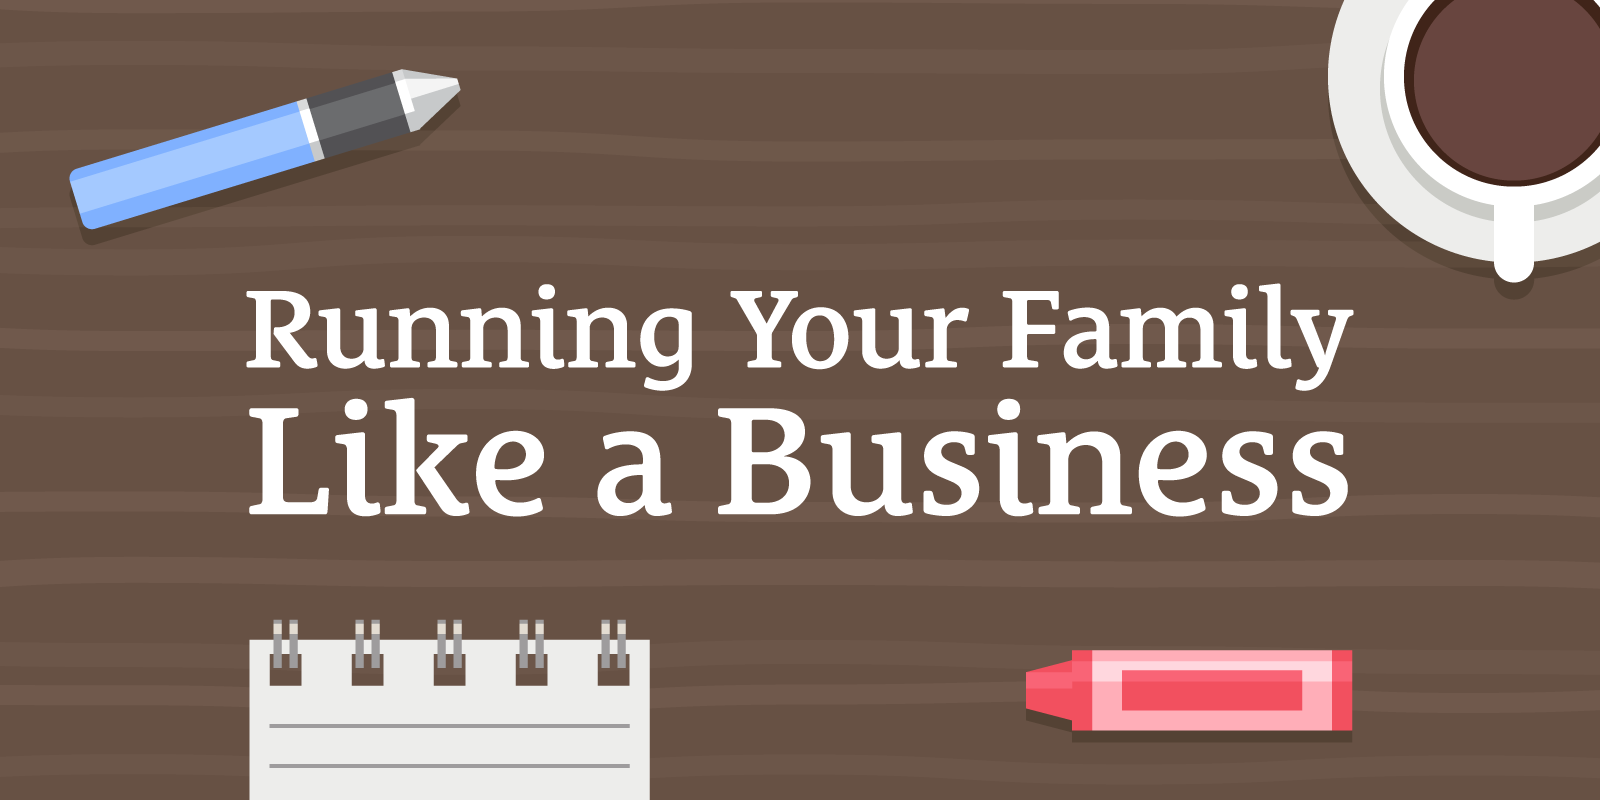 Running Your Family Like a Business and Getting on Top of Life